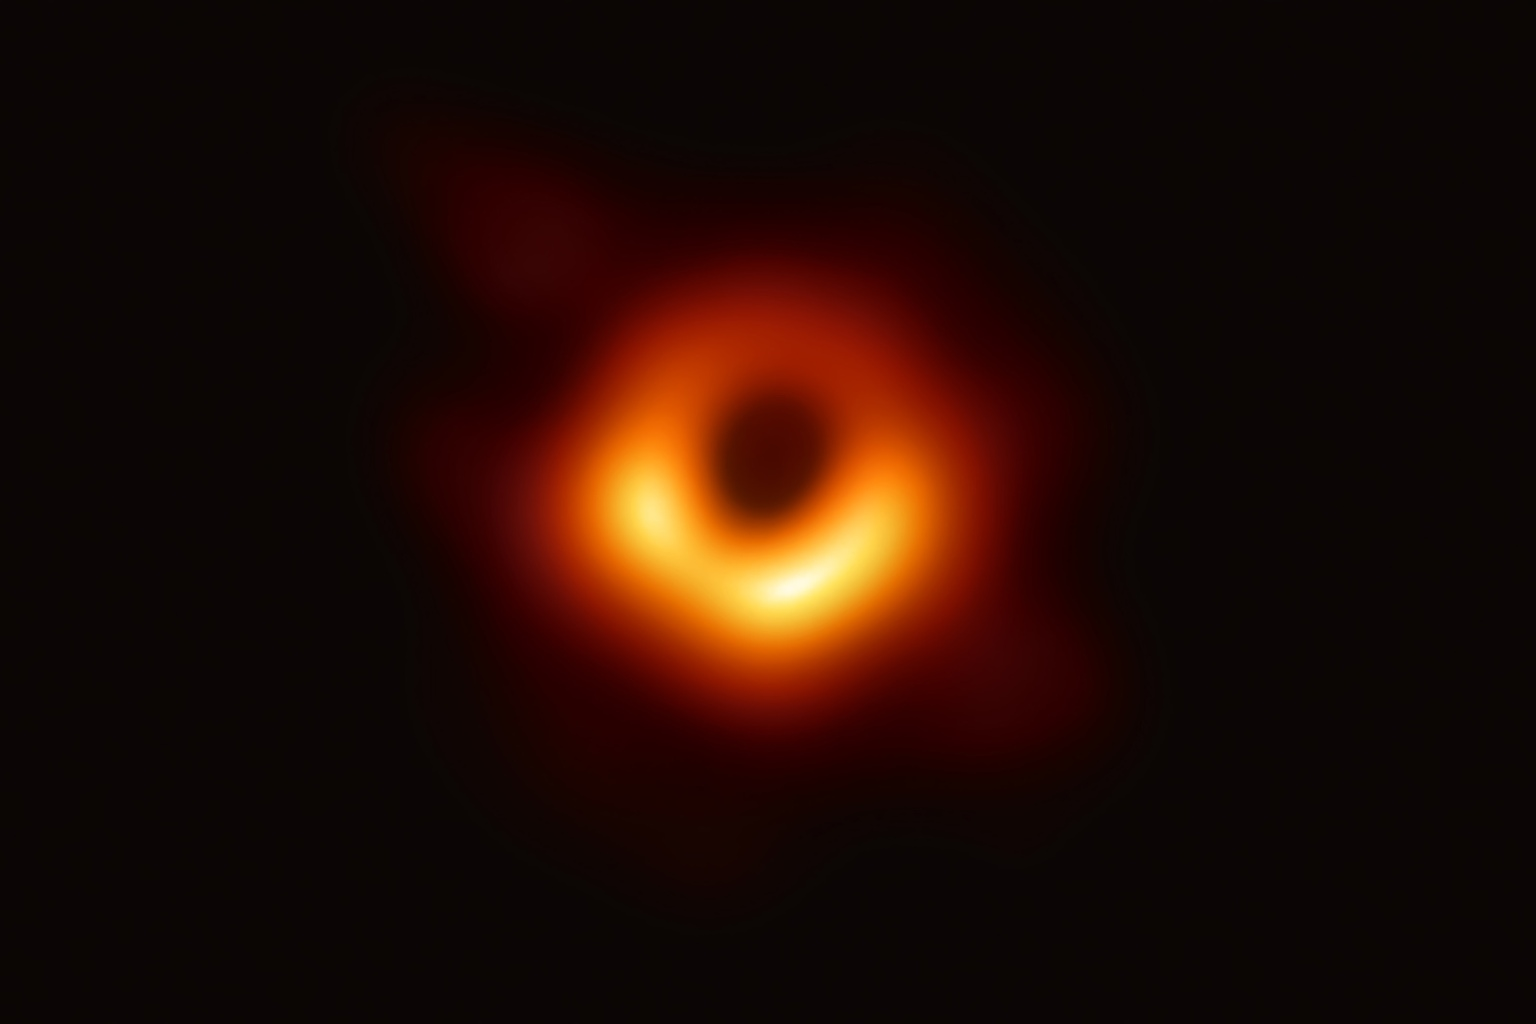 The Event Horizon Telescope captures the first image of a black hole at the center of galaxy M87, outlined by emission from hot gas swirling around it under the influence of strong gravity, in an image released on April 10. National Science Foundation via Getty Images